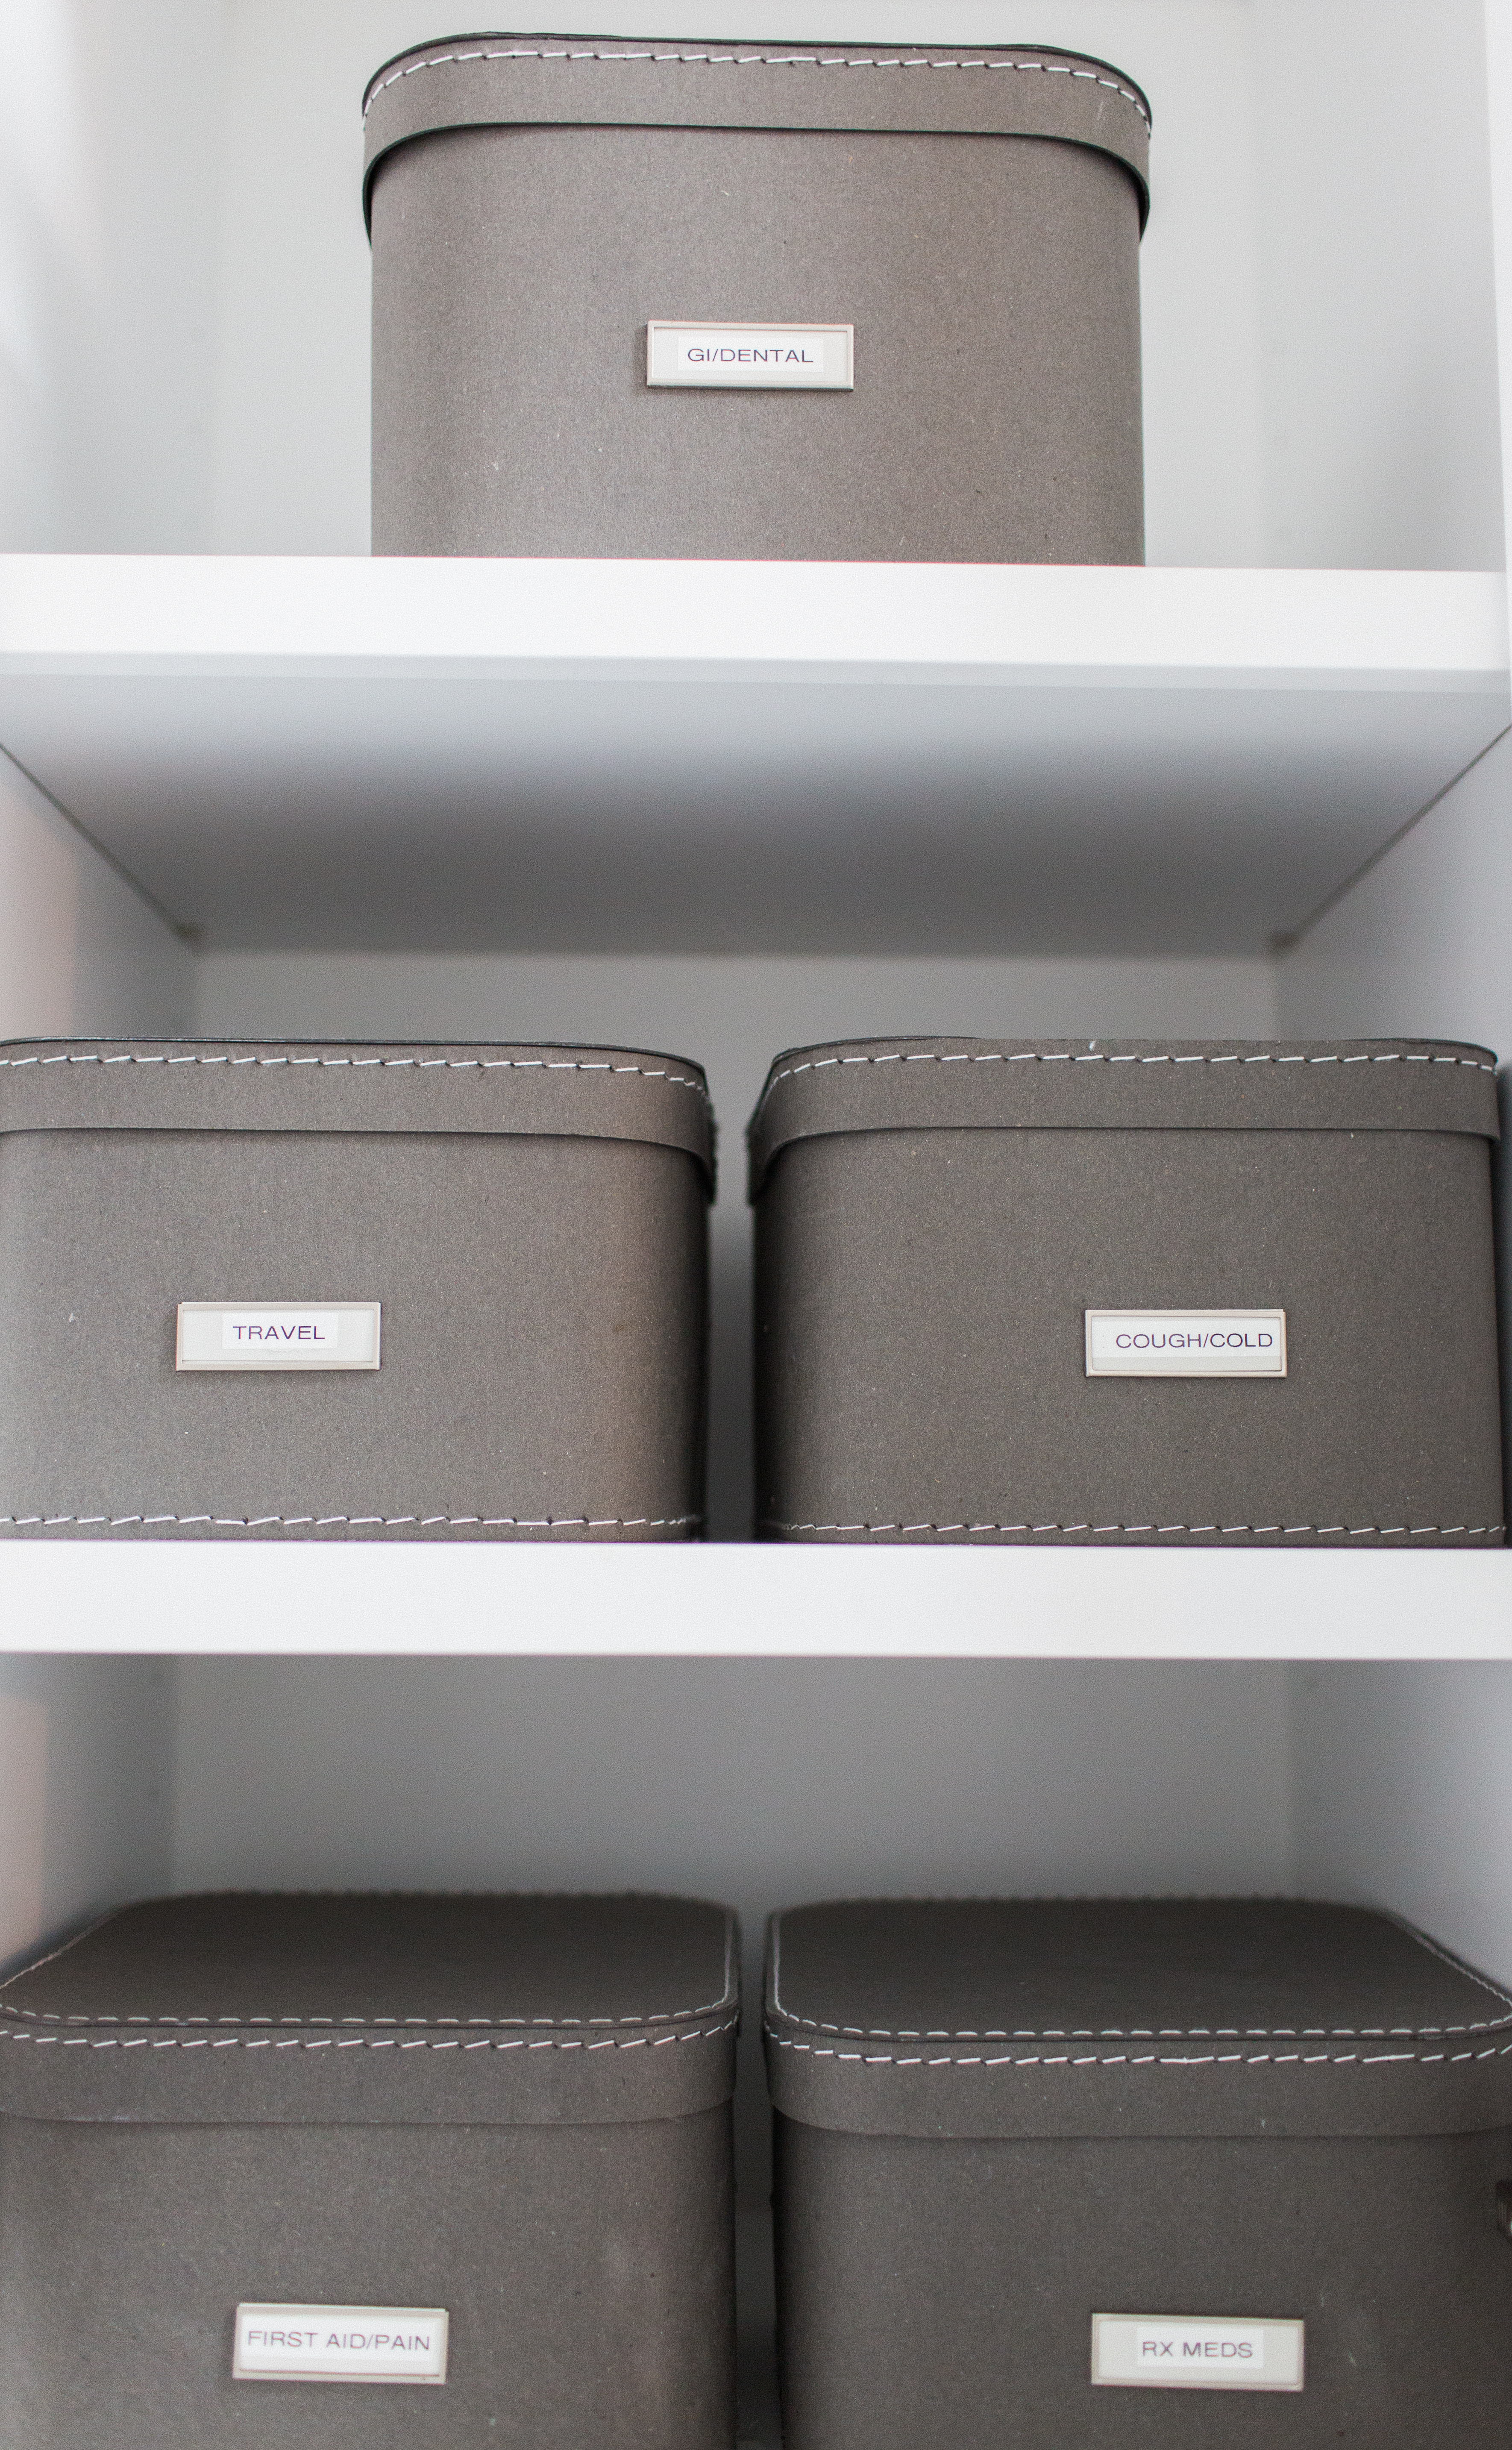 7 Great Organization Products and Ideas to Simplify your Life